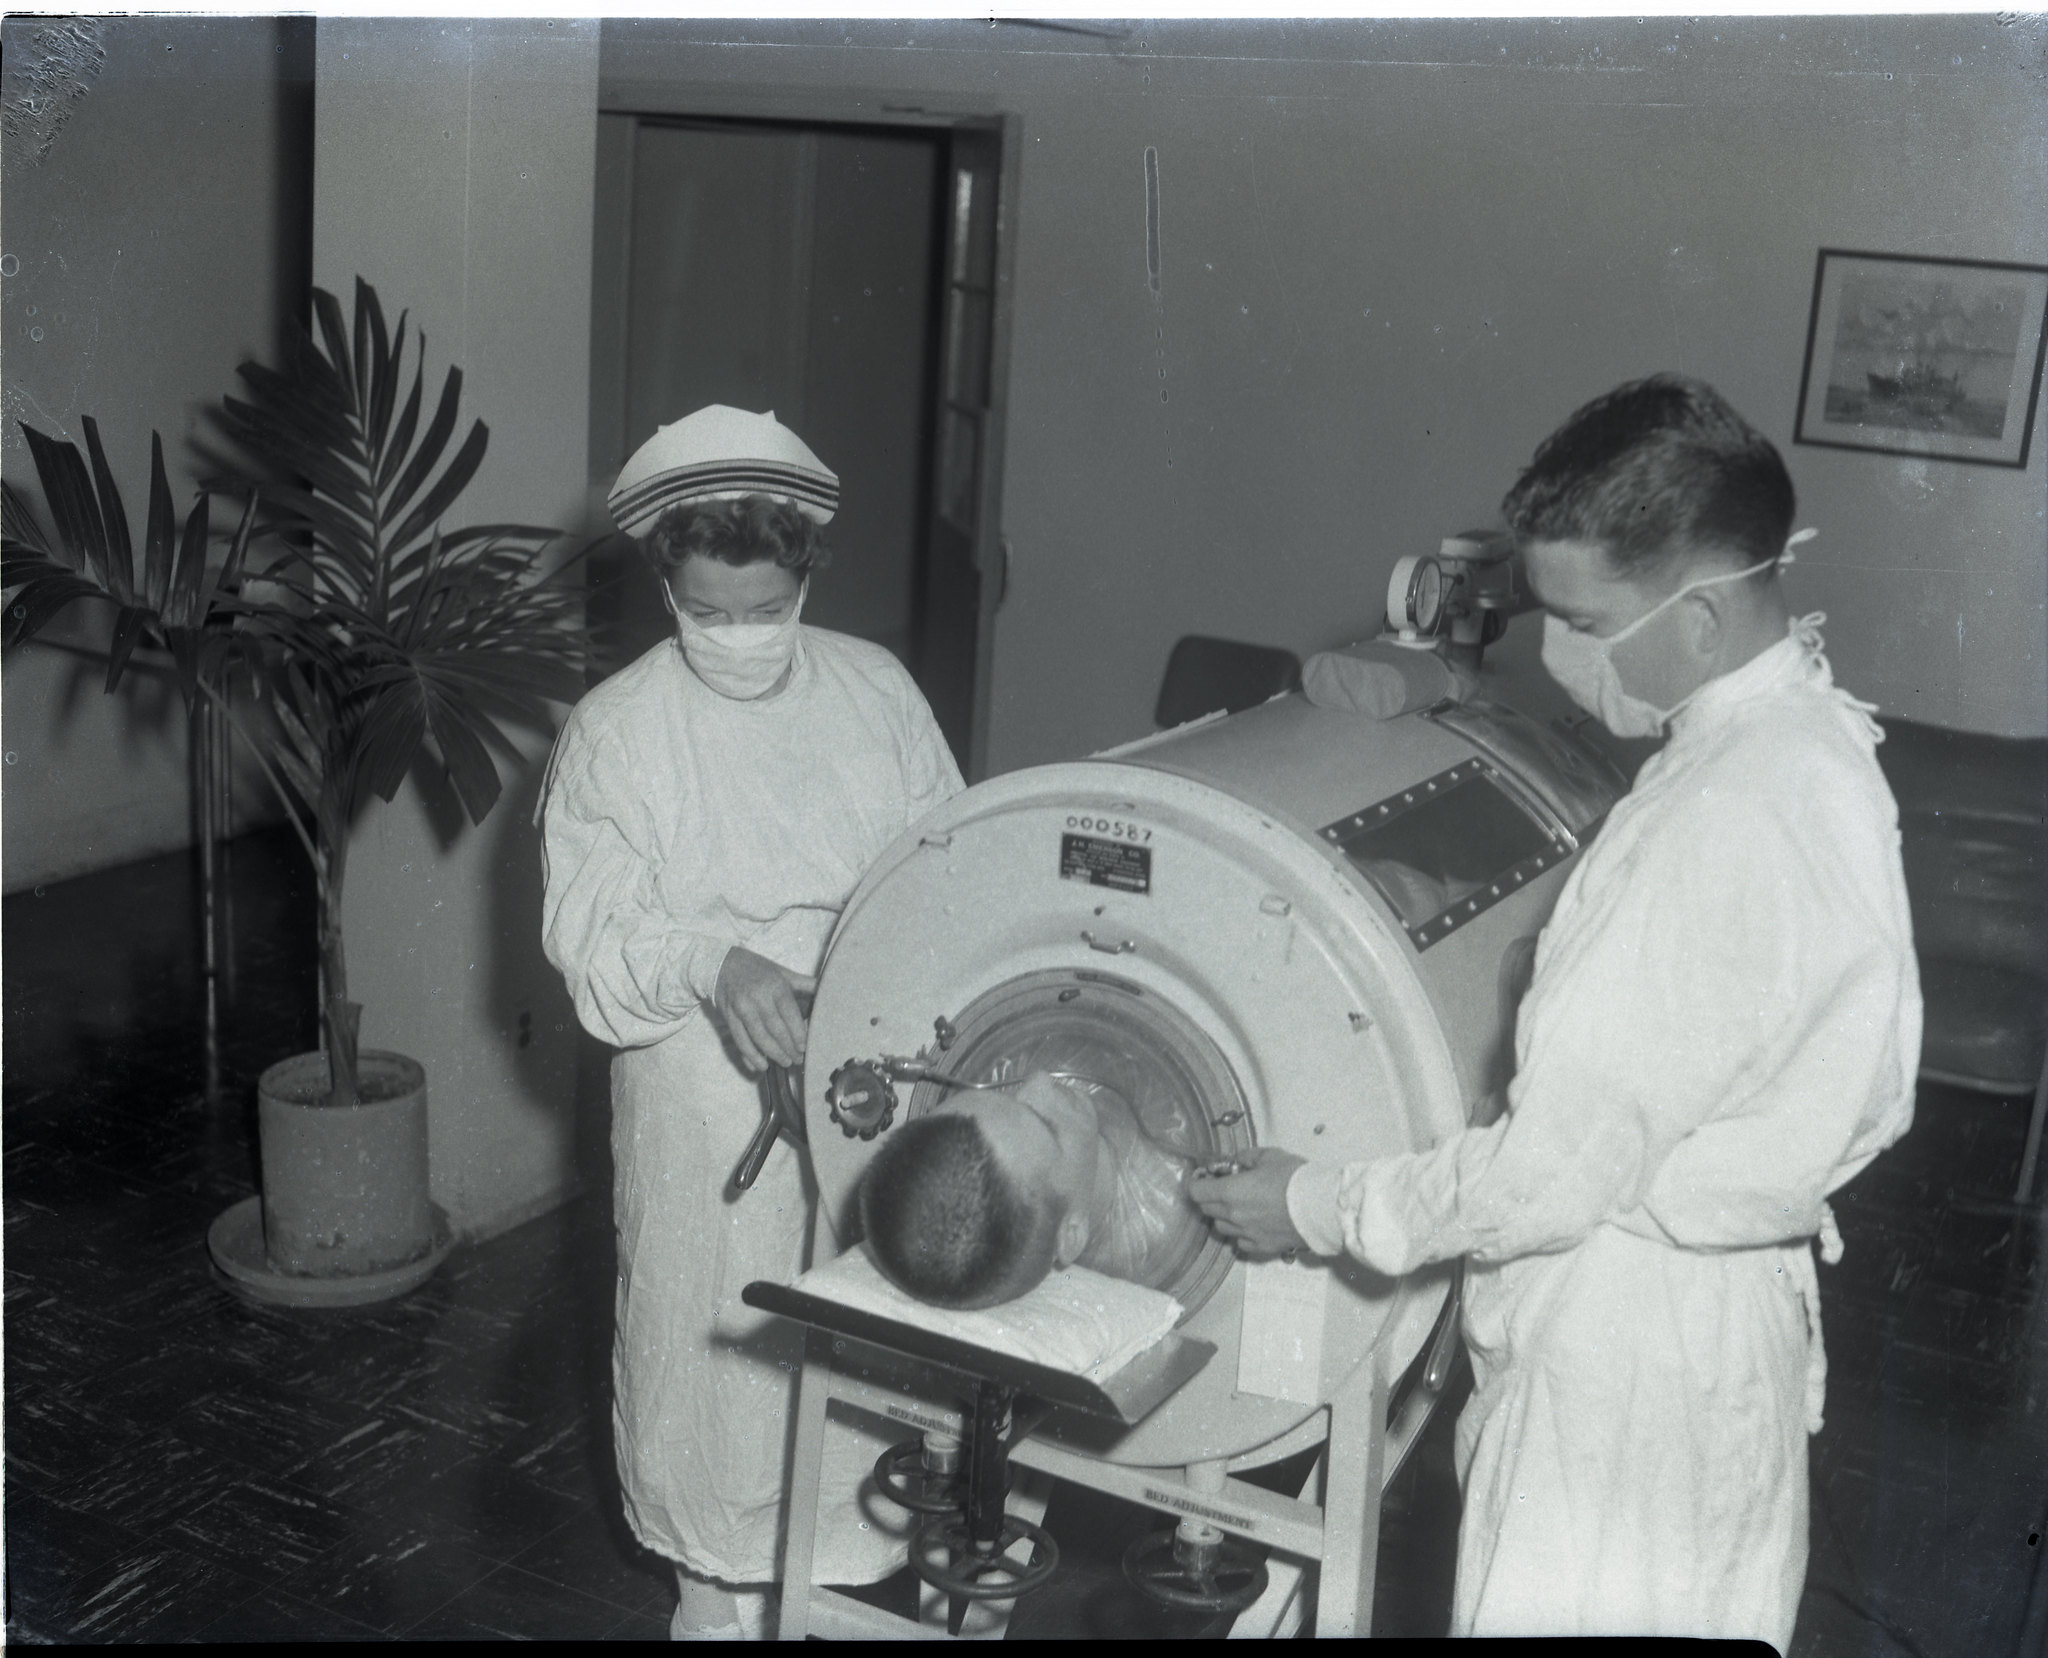 Image of a boy in an Iron Lung at the Naval Hosptial C 1960, and a doctor and a nurse standing around it. The Iron Lung was a healthcare innovation that saved many lives.